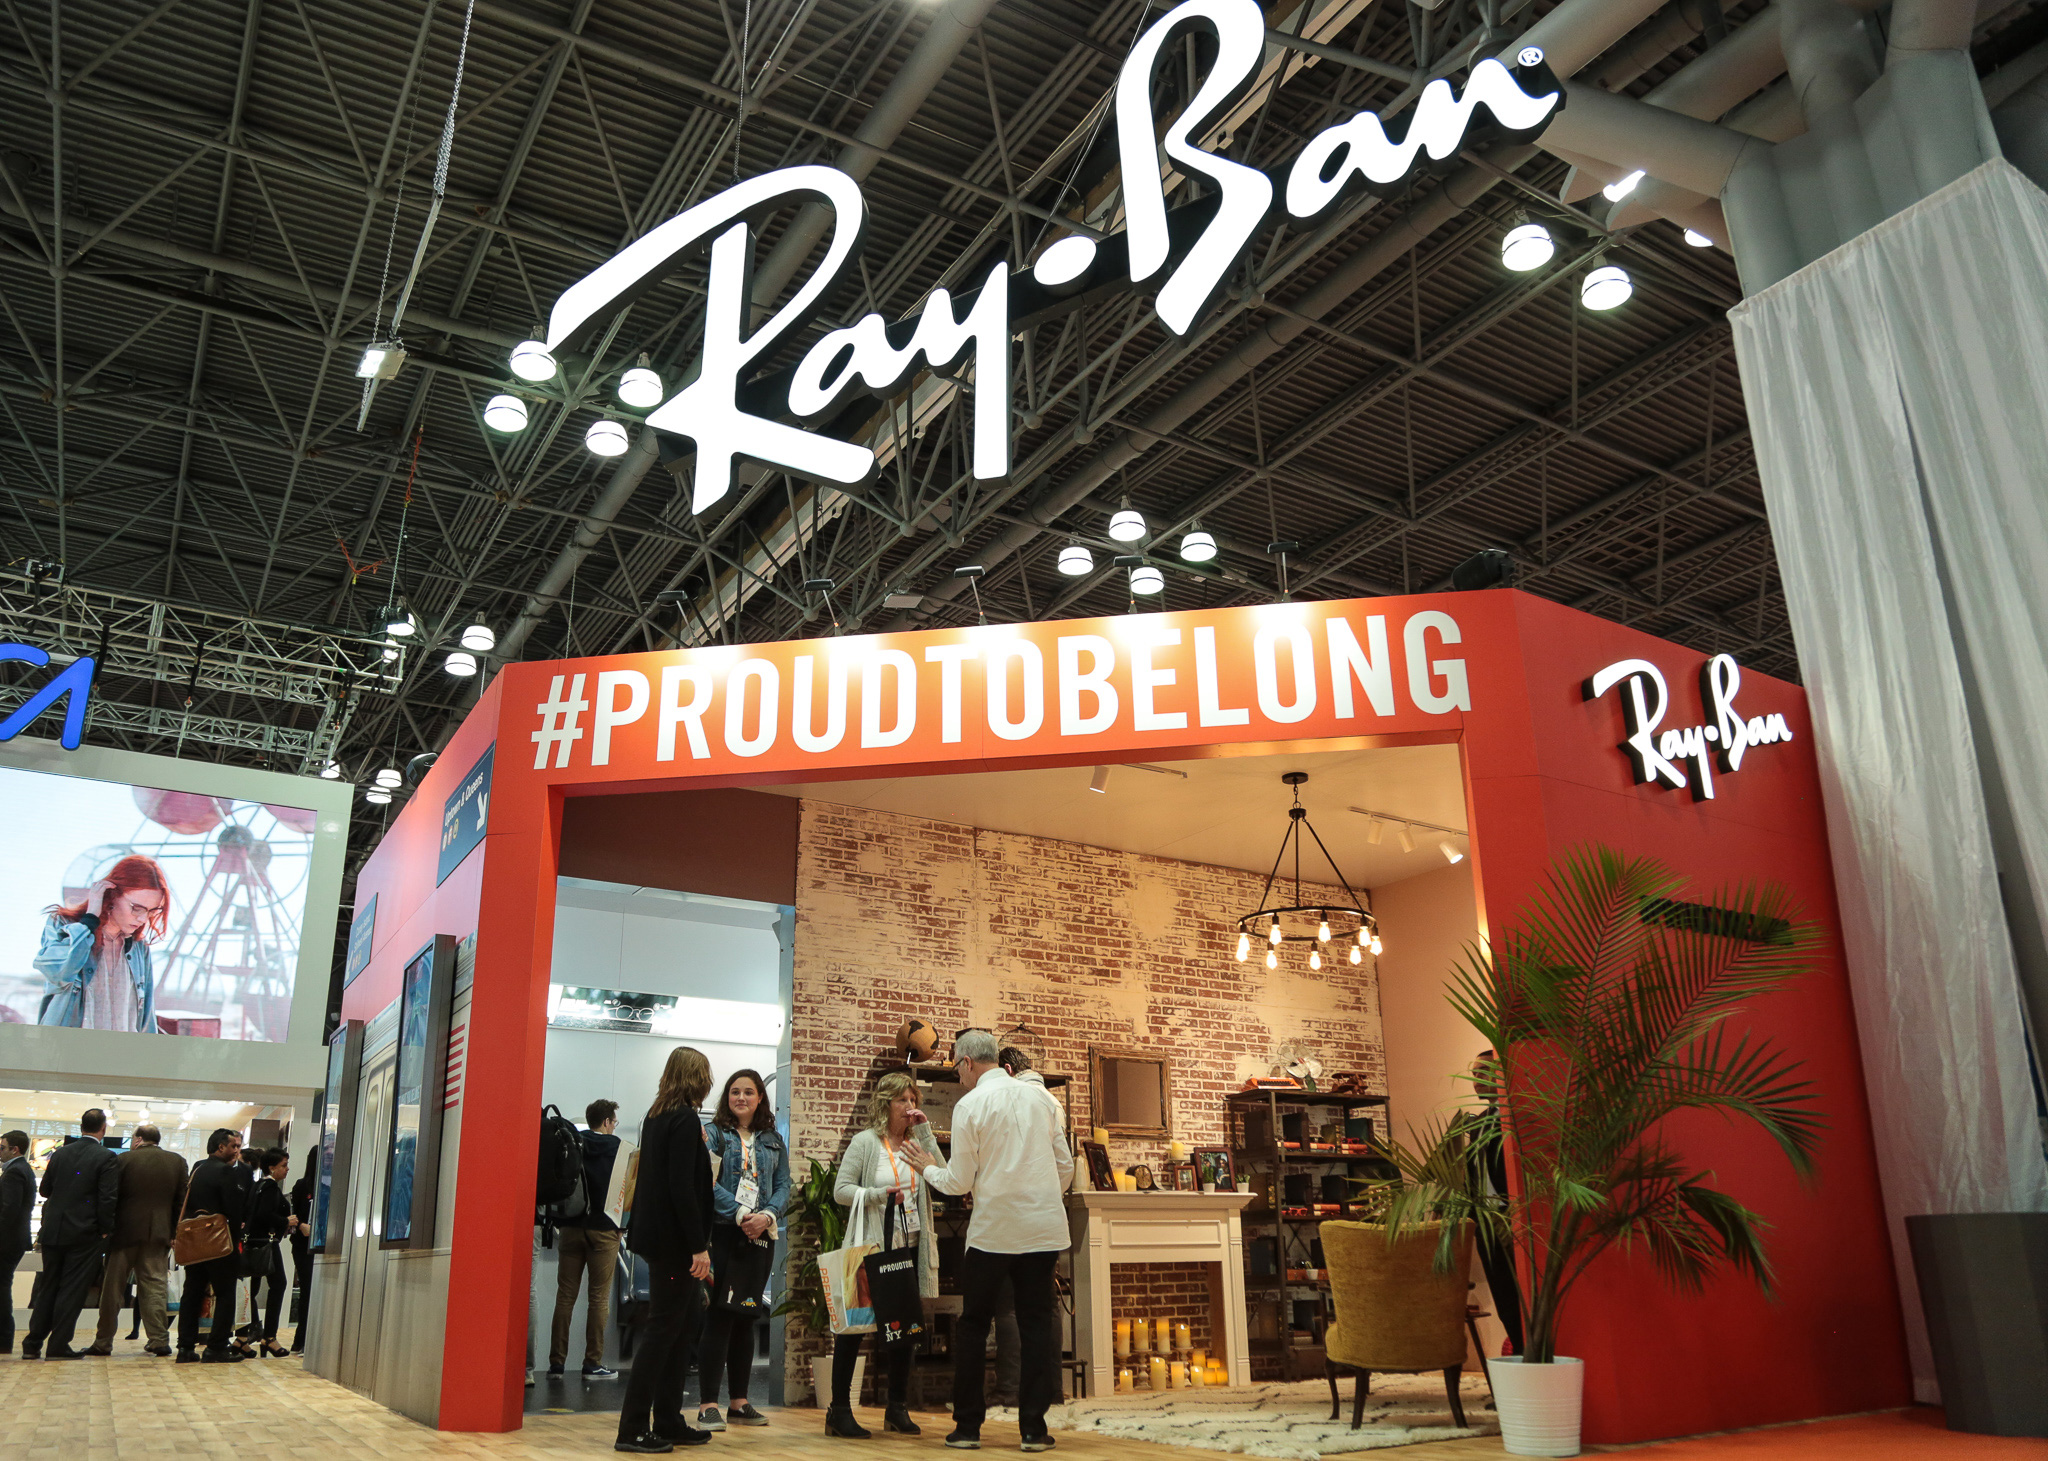 Ray Ban Show Booth